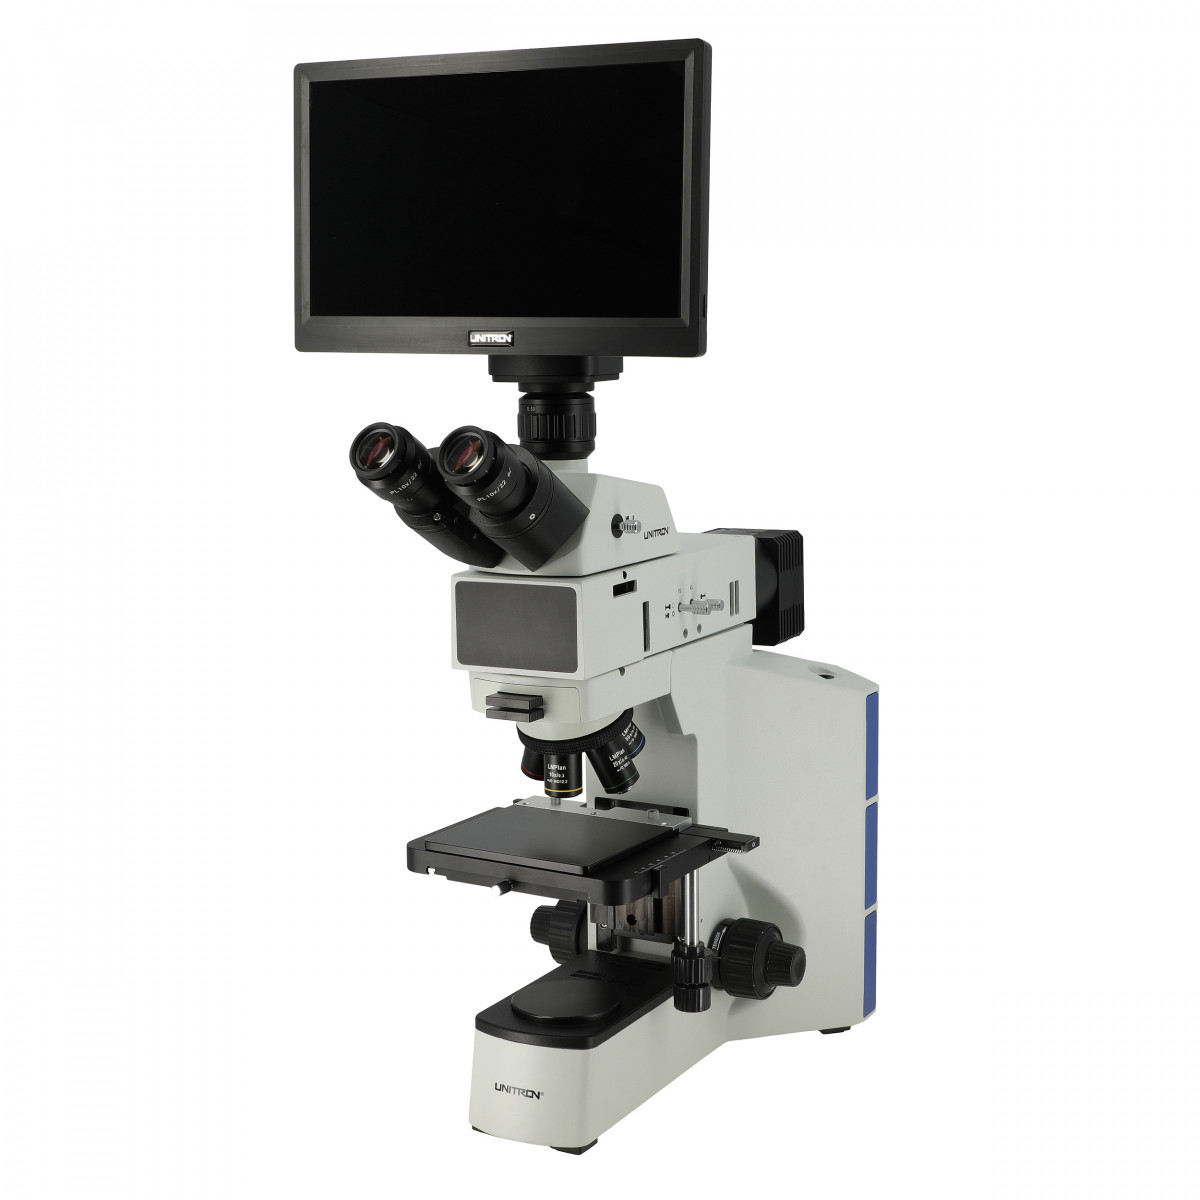 EXAMET-5 shown with optional Excelis HDS camera and monitor